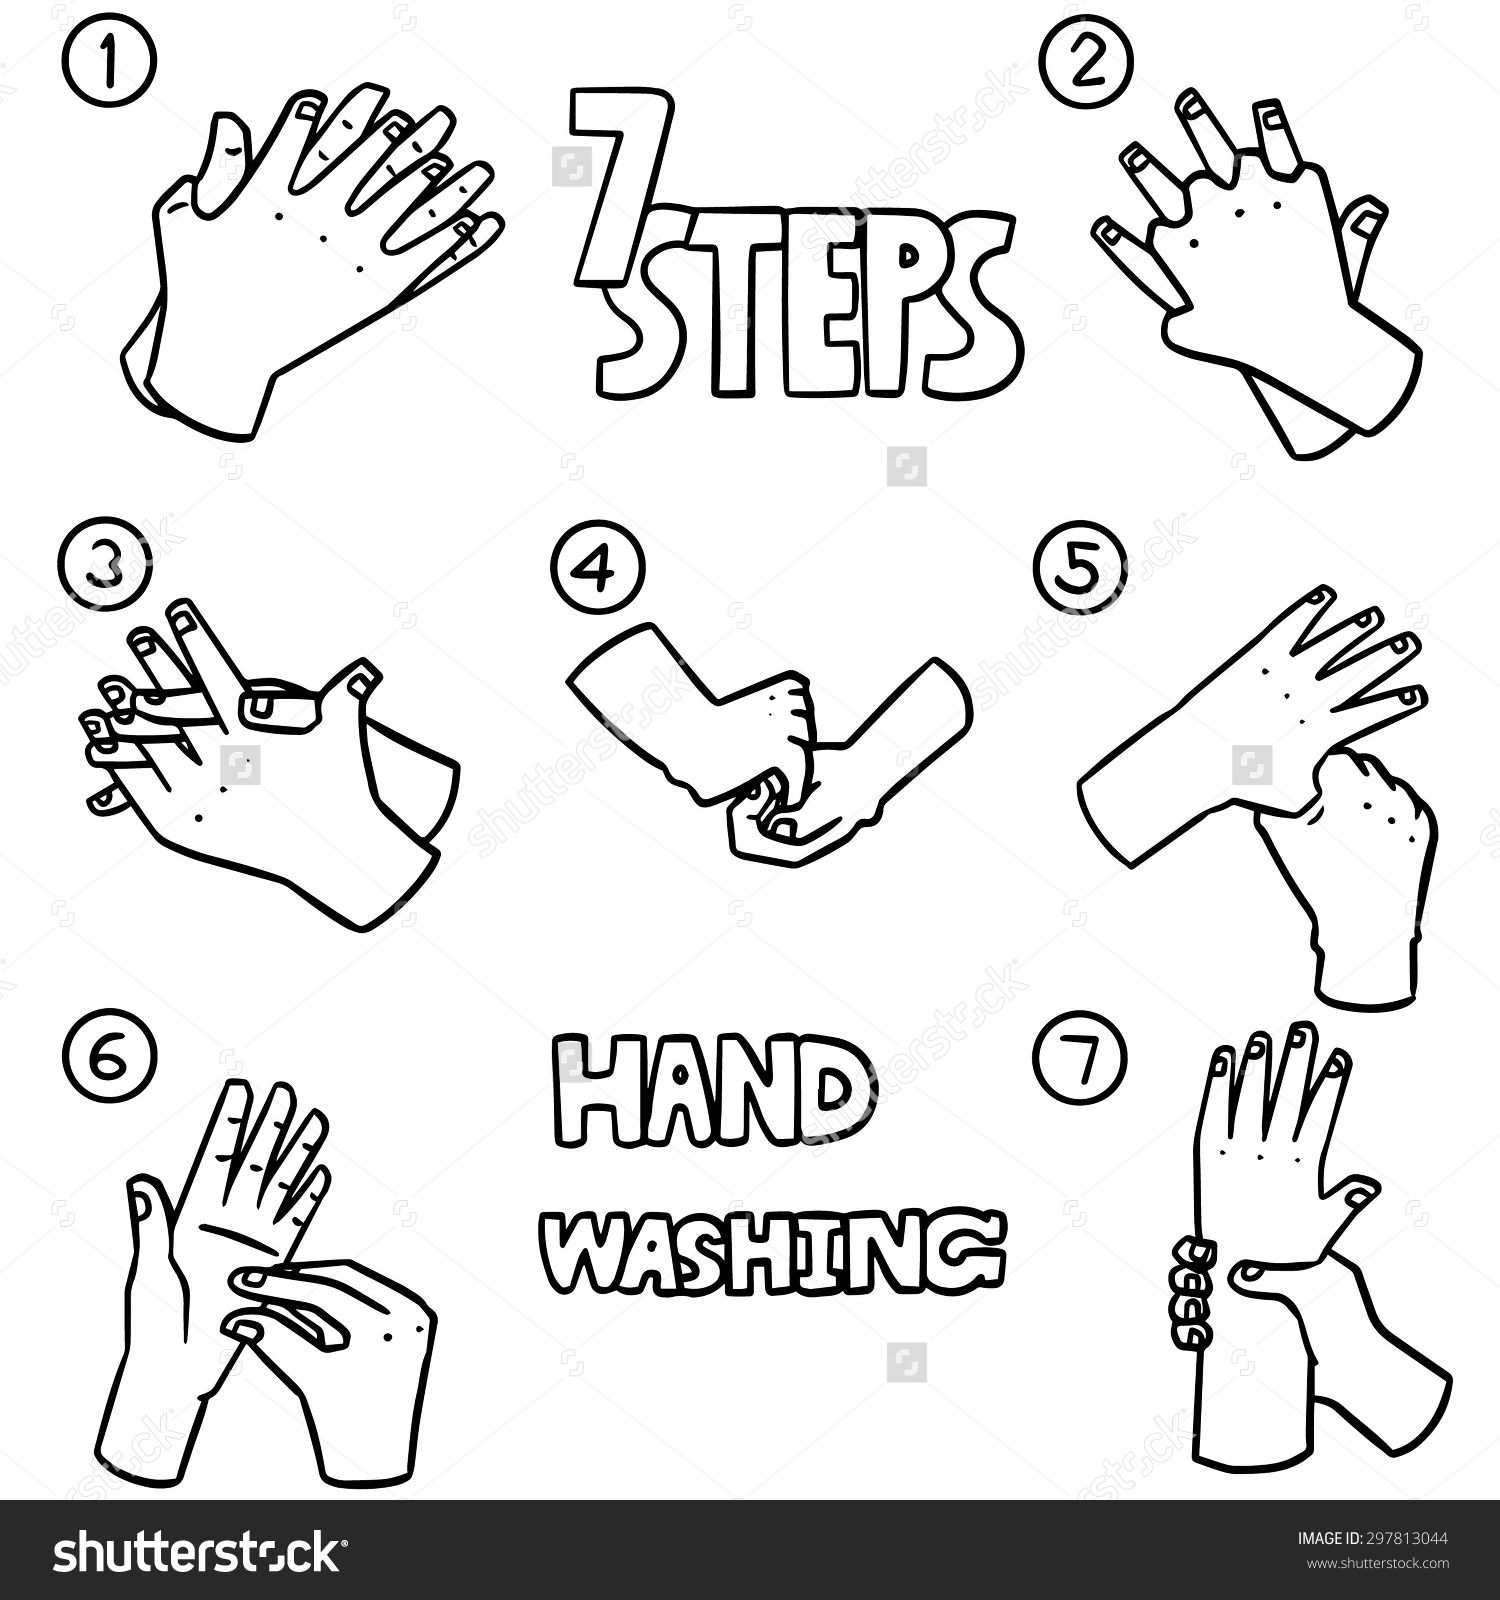 Hand washing clipart black and white clipart freeuse library Vector Set Hand Washing Steps Stock Vector 297813044 - Shutterstock clipart freeuse library